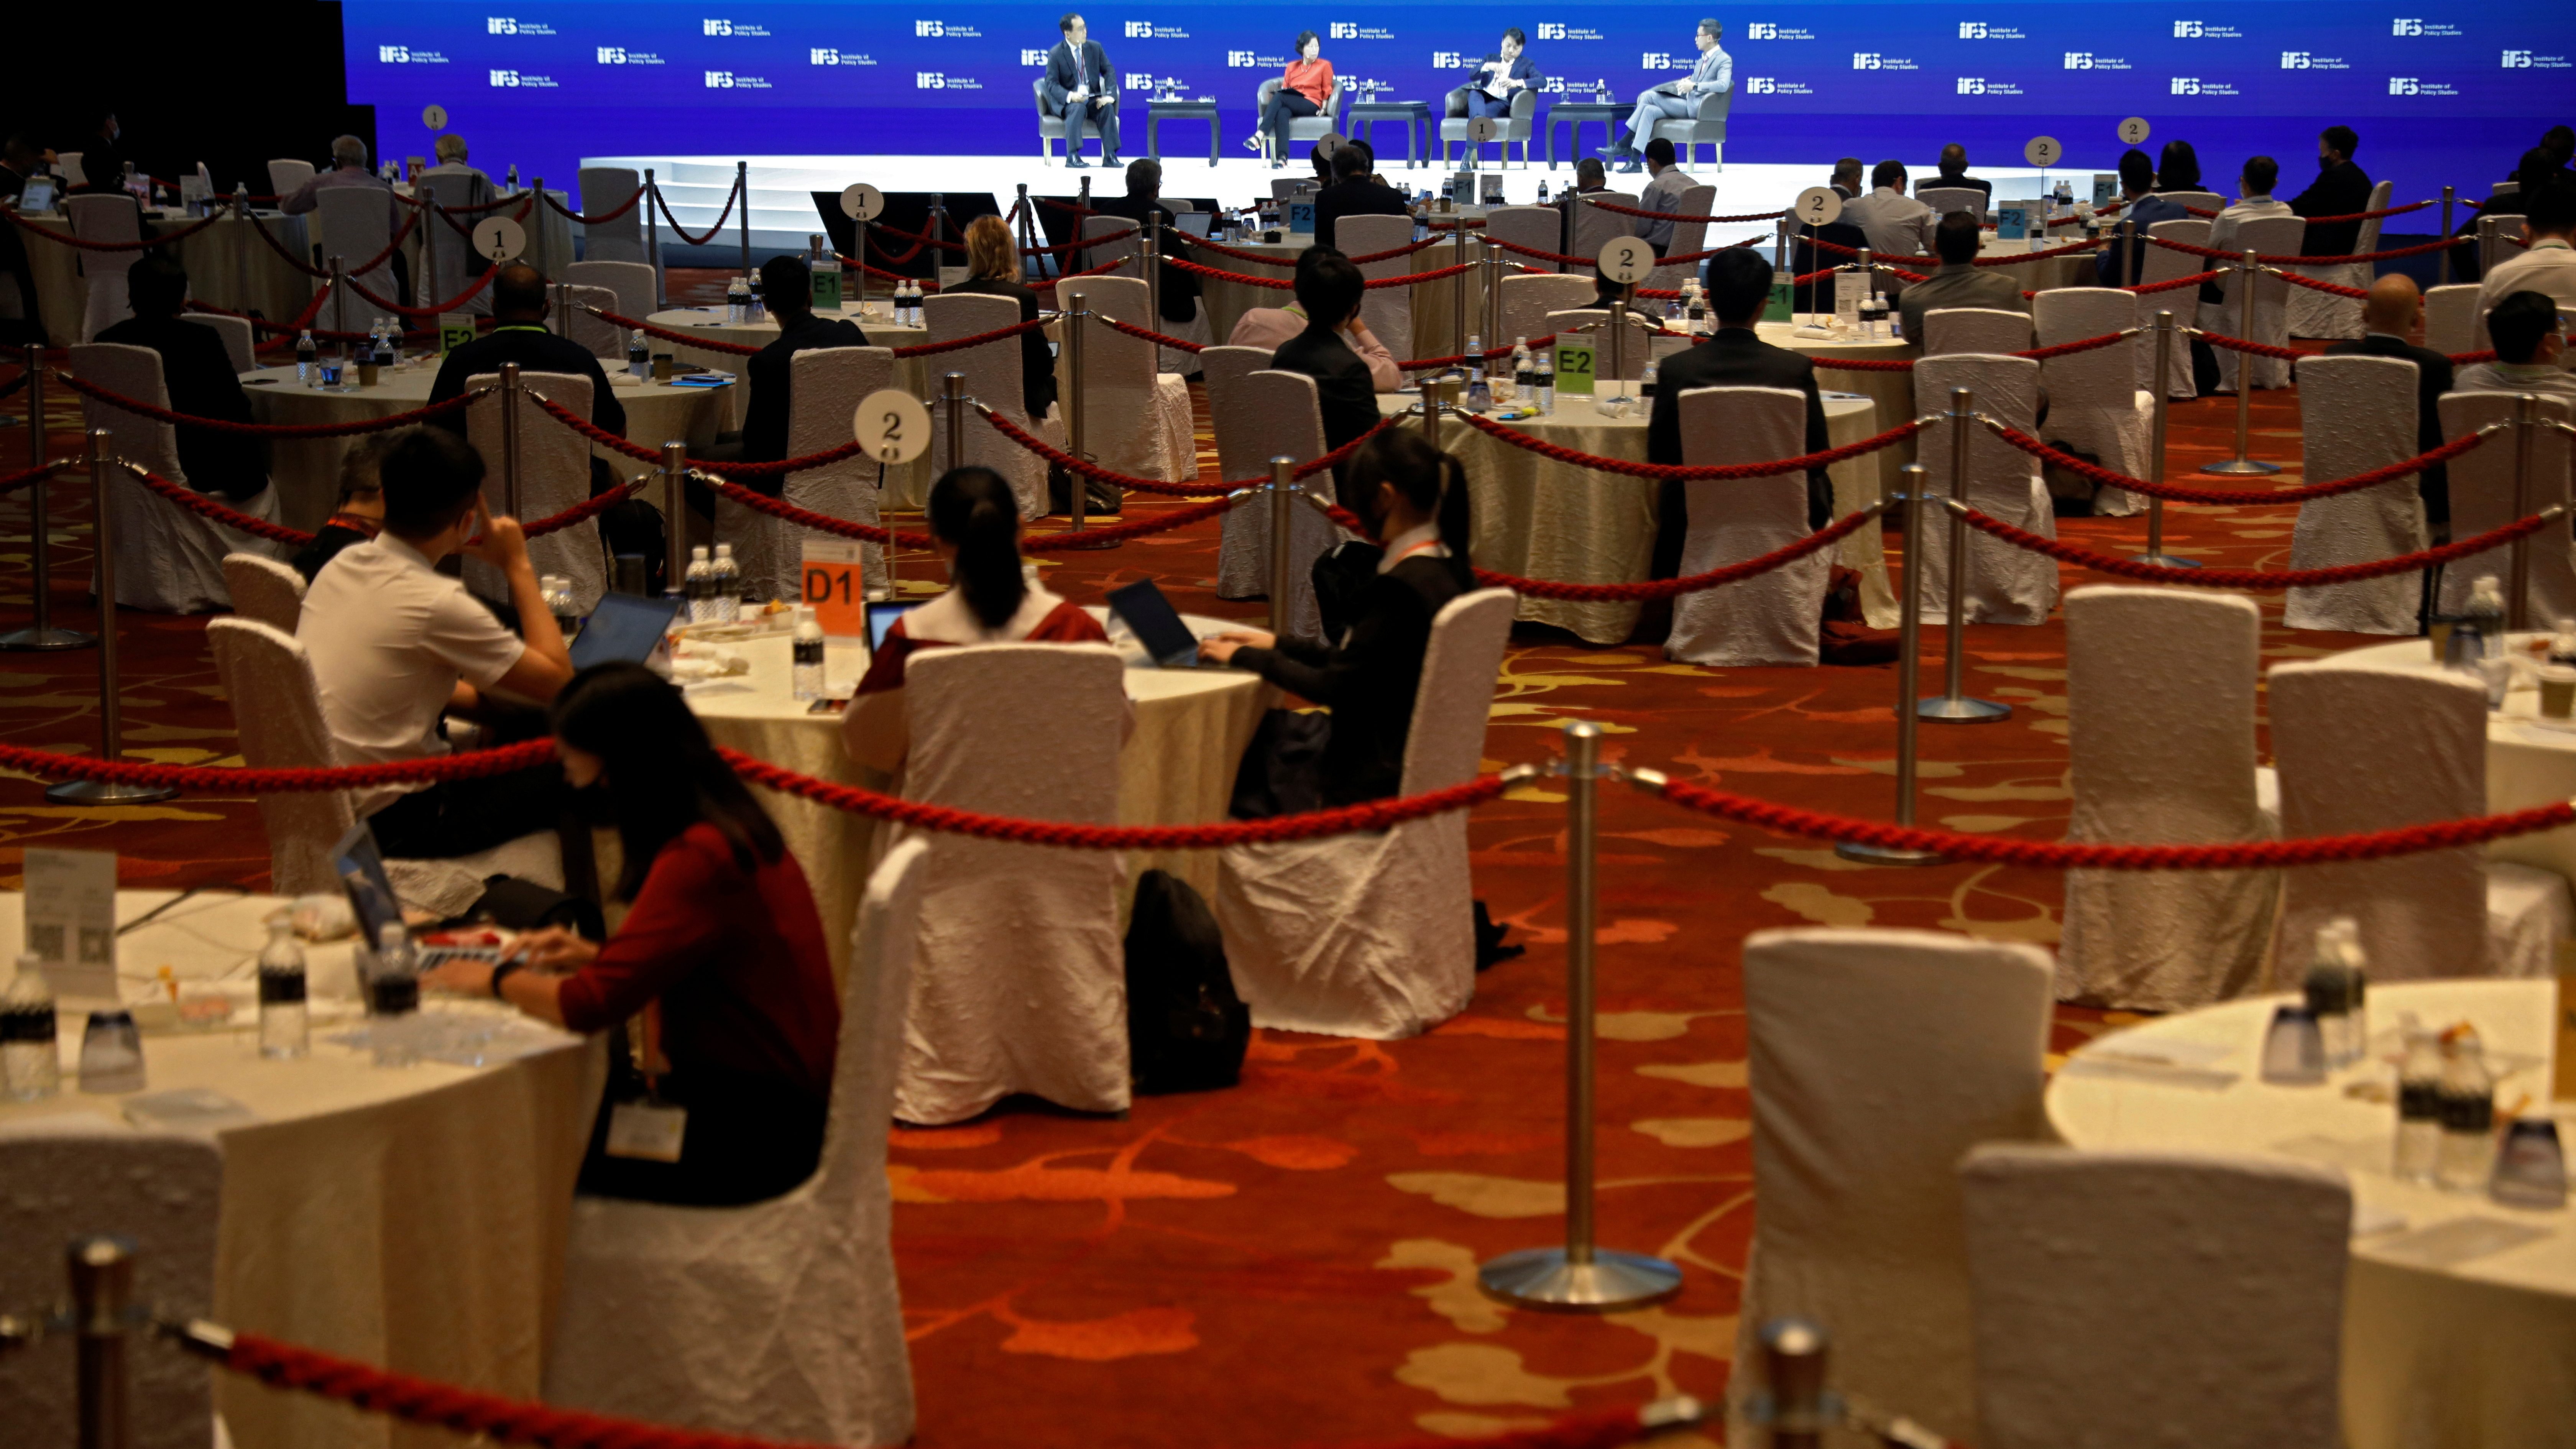 Attendees sit apart at social distanced tables segregated by ropes, during a conference held by the Institute of Policy Studies at Marina Bay Sands Convention Centre in Singapore January 25, 2021. Picture taken January 25, 2021. REUTERS/Edgar Su